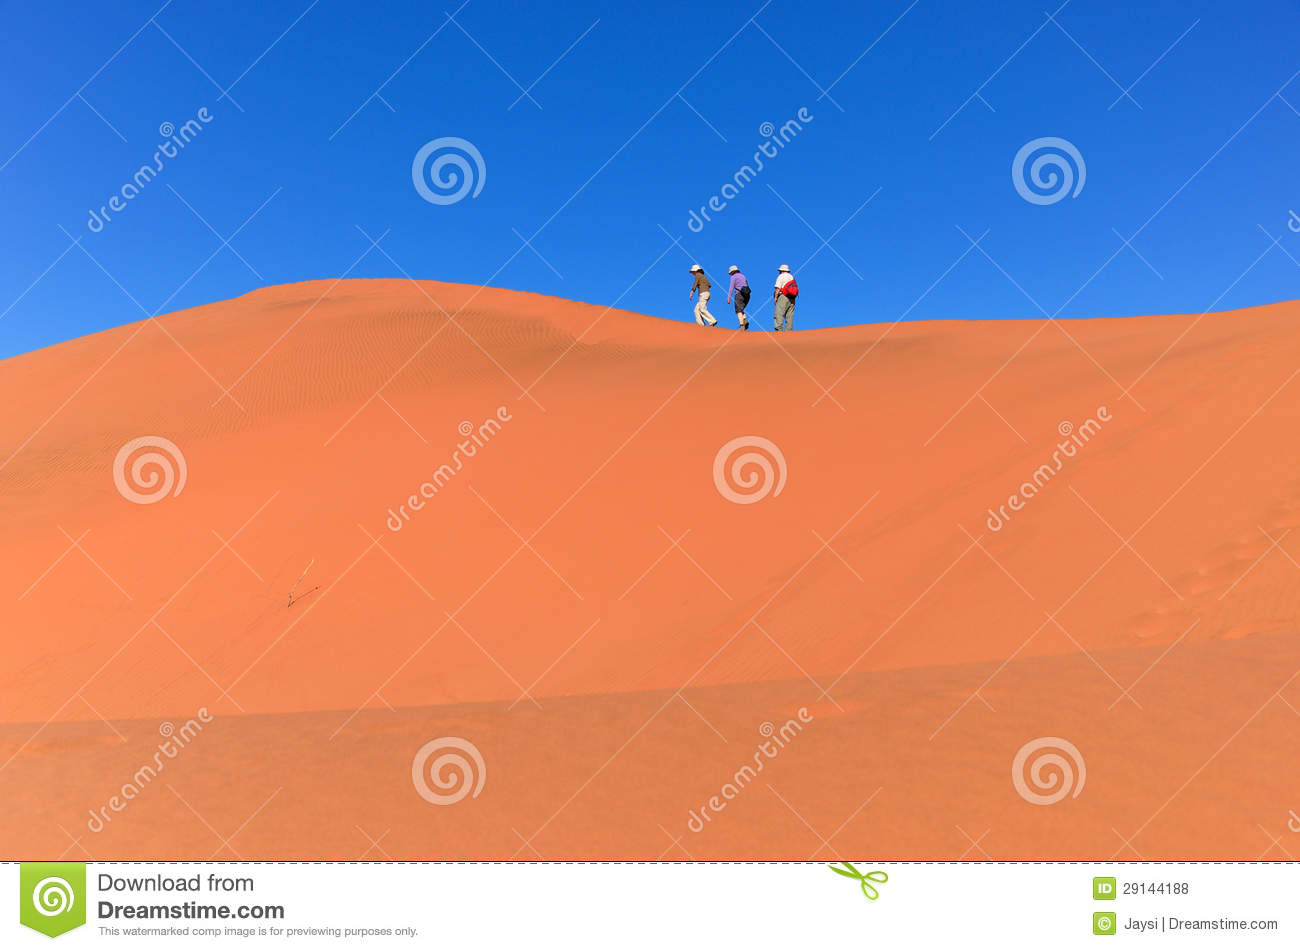 Traveling in Africa, people on dune